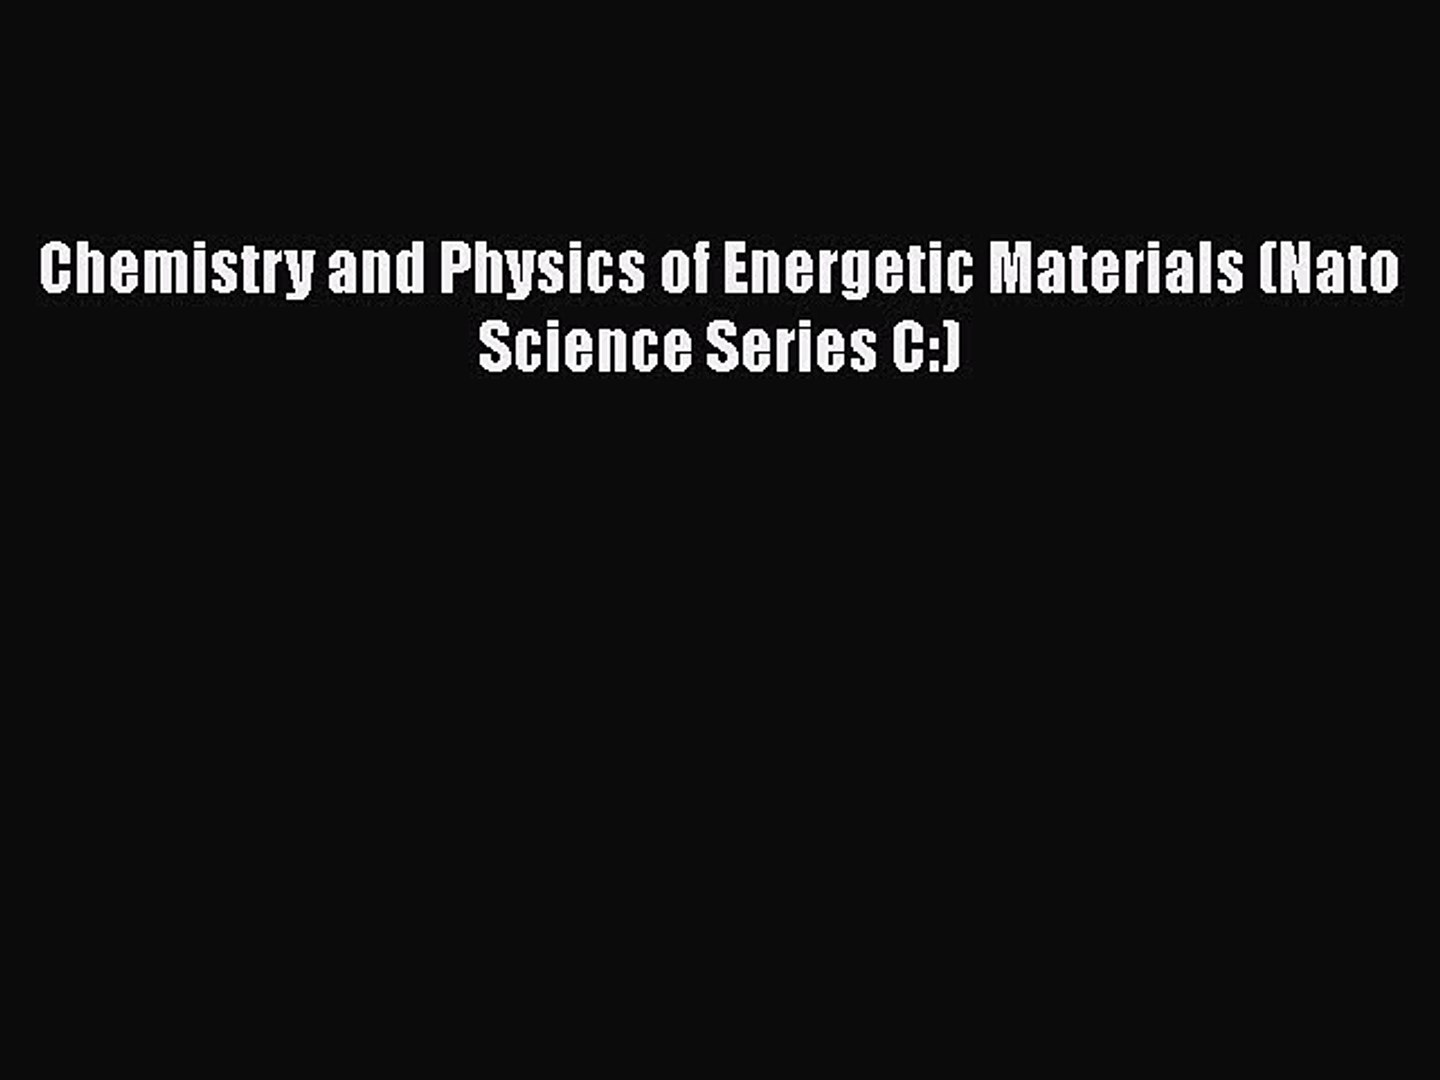 Energetic Materials. Physics and Chemistry of Inorganic Azides